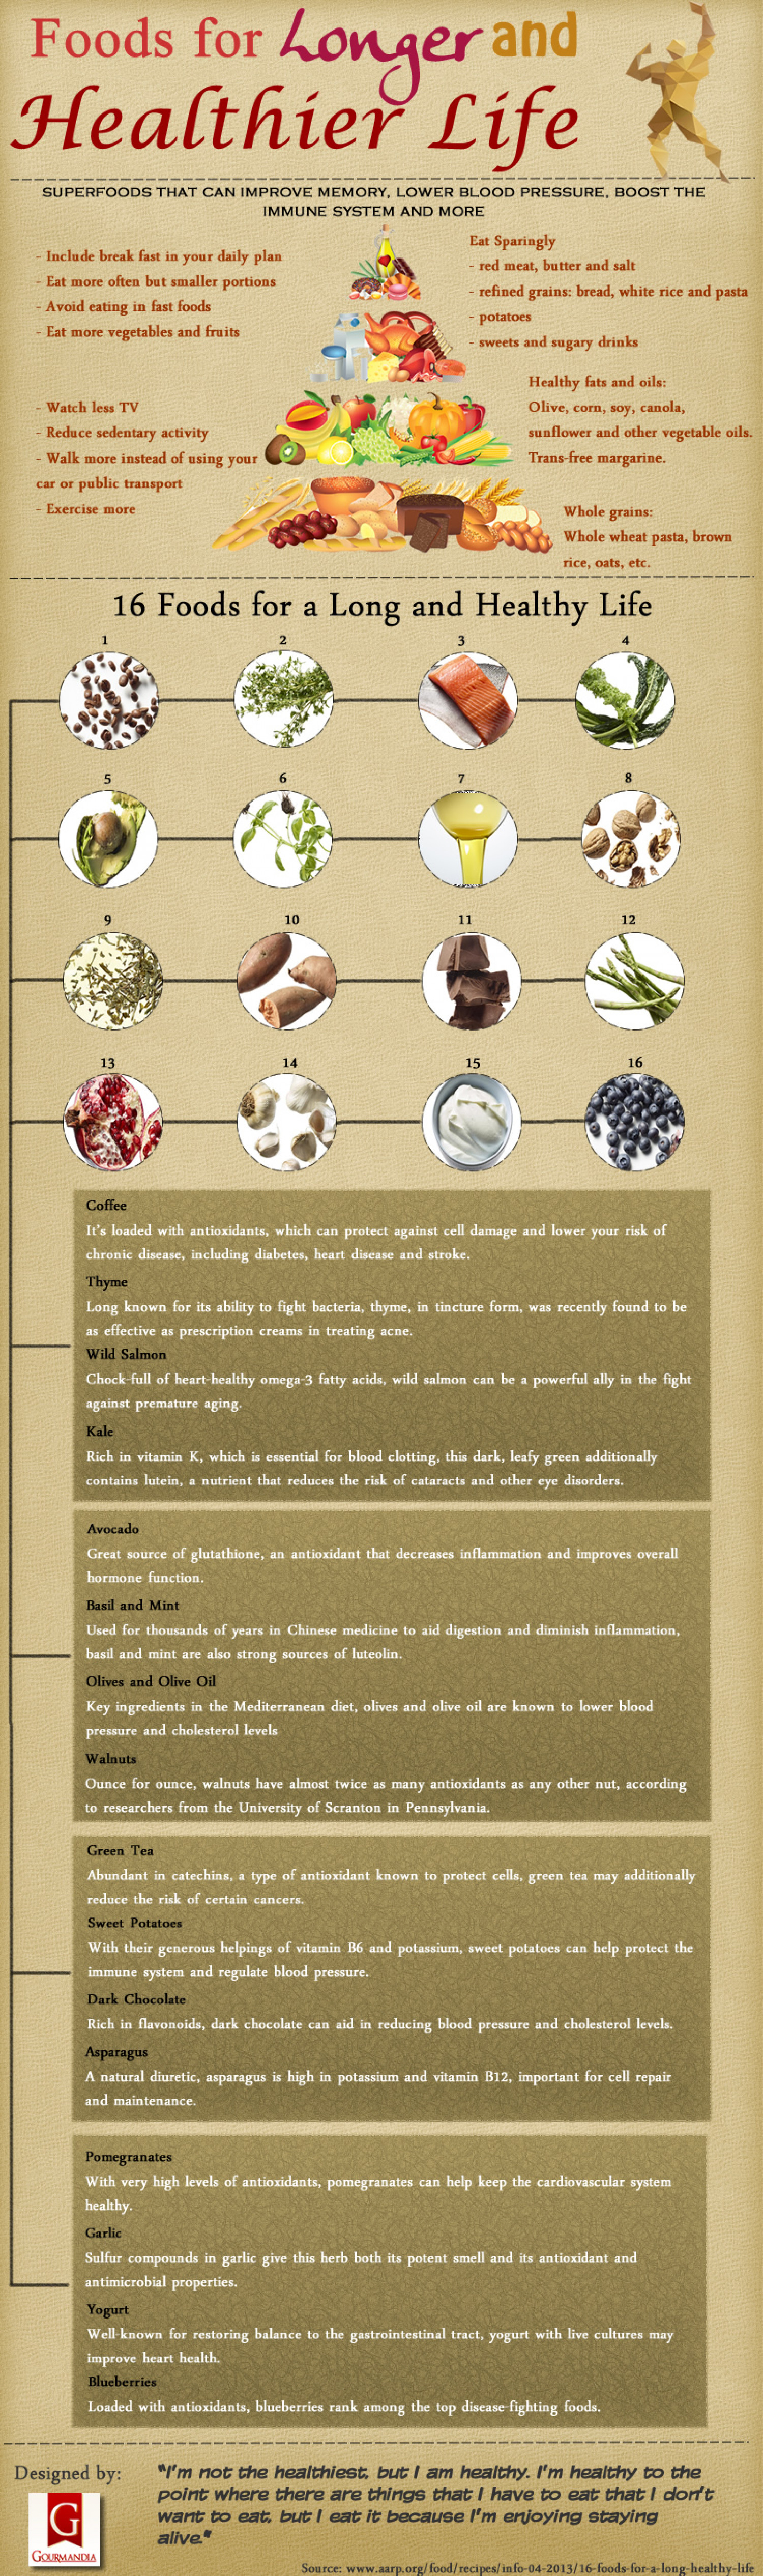 Foods for Longer and Healthier Life Infographic